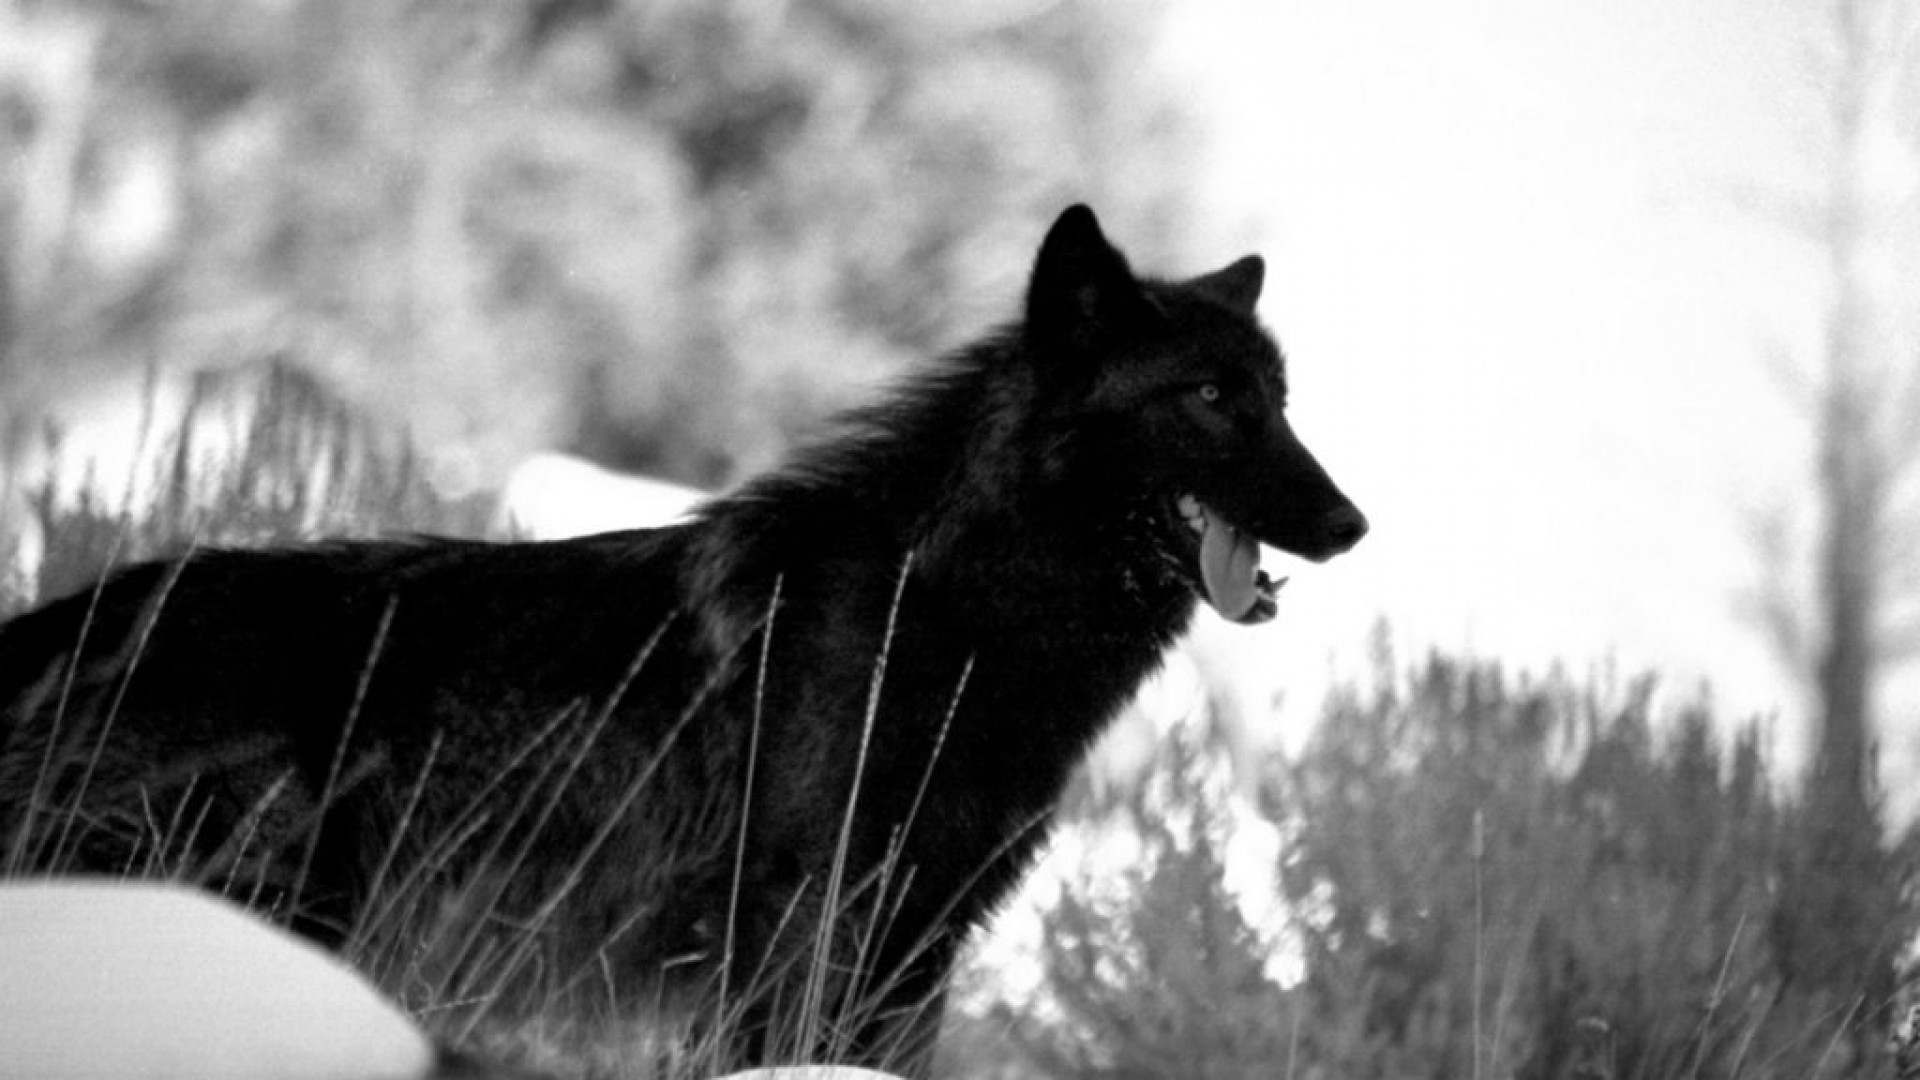 Alone Hd Wallpapers 1080p Black Wolf Wallpapers High Quality Download Free